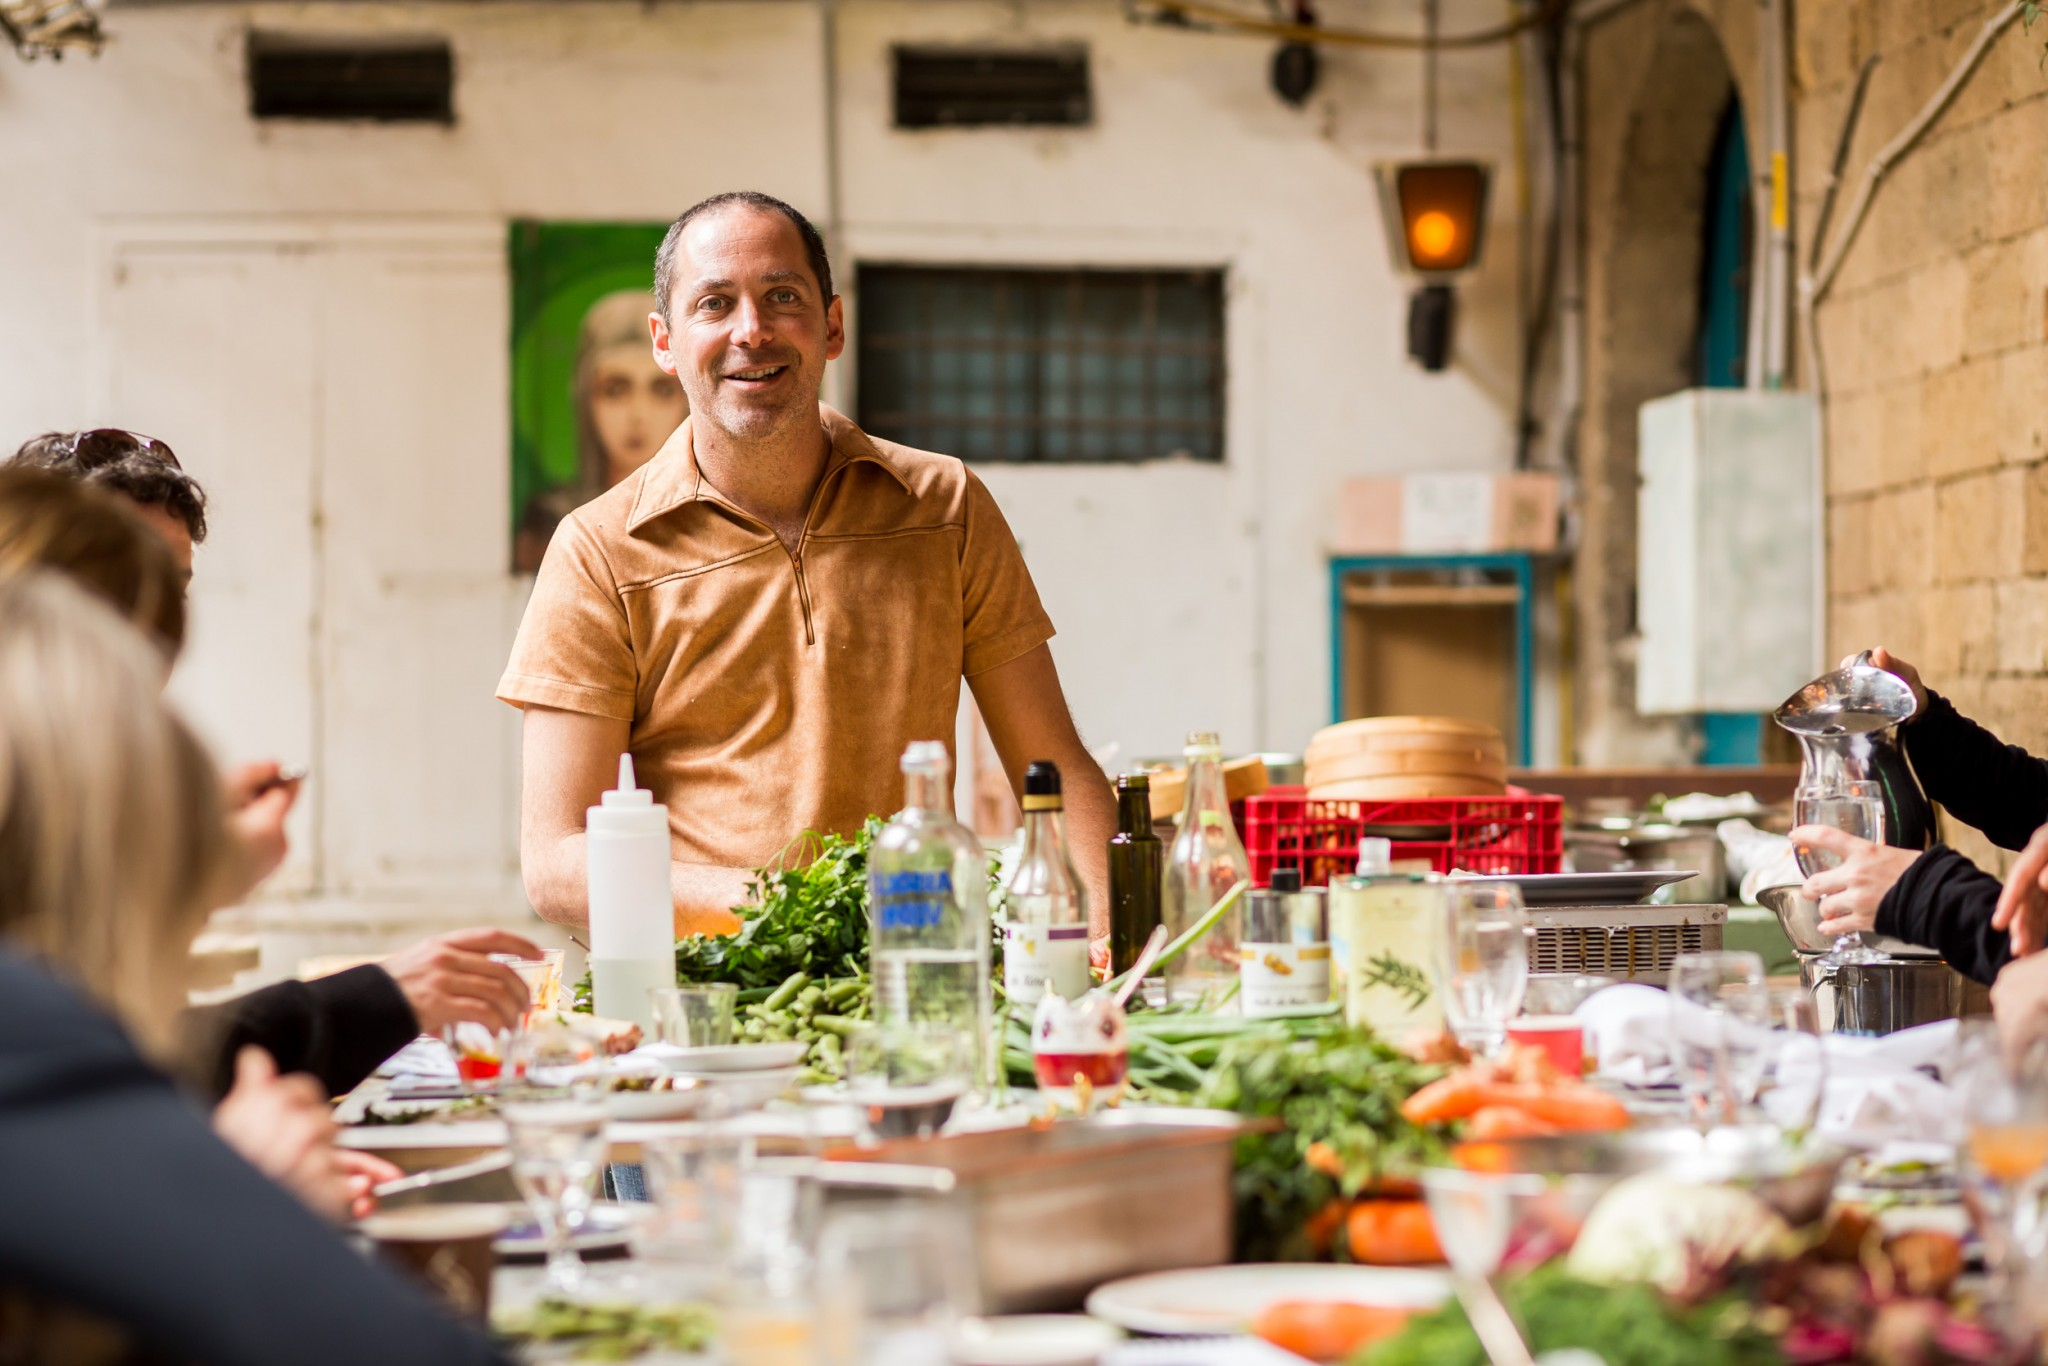 Chef Nir Zook of Mapu in Jerusalem. Photo by Tomer Foltyn